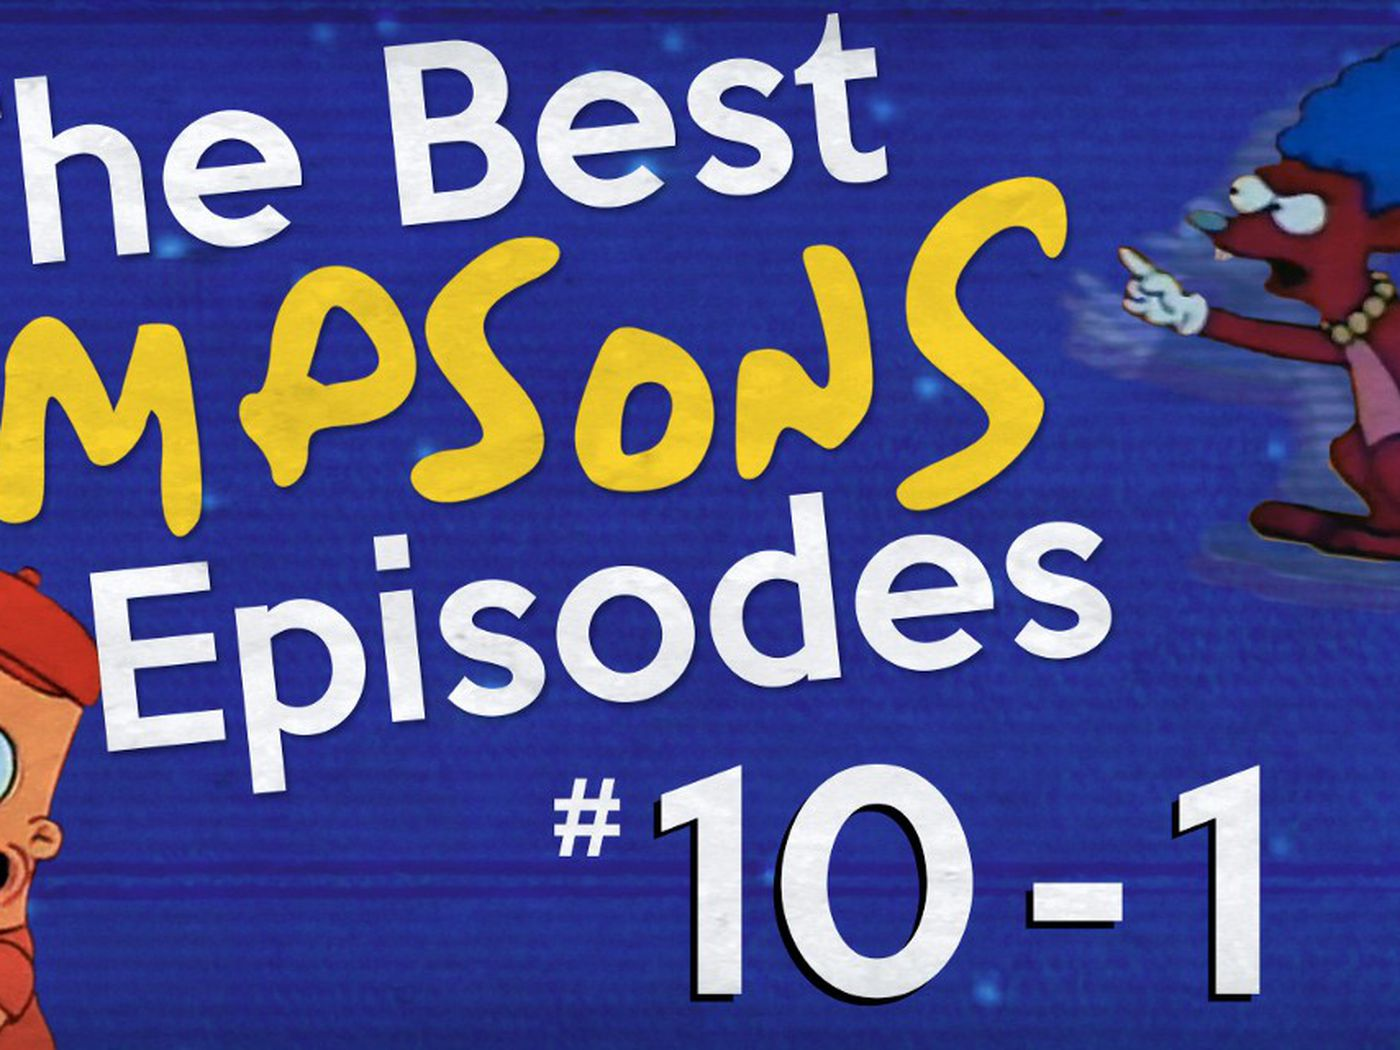 The Best Simpsons Episodes 10 1 The Ringer